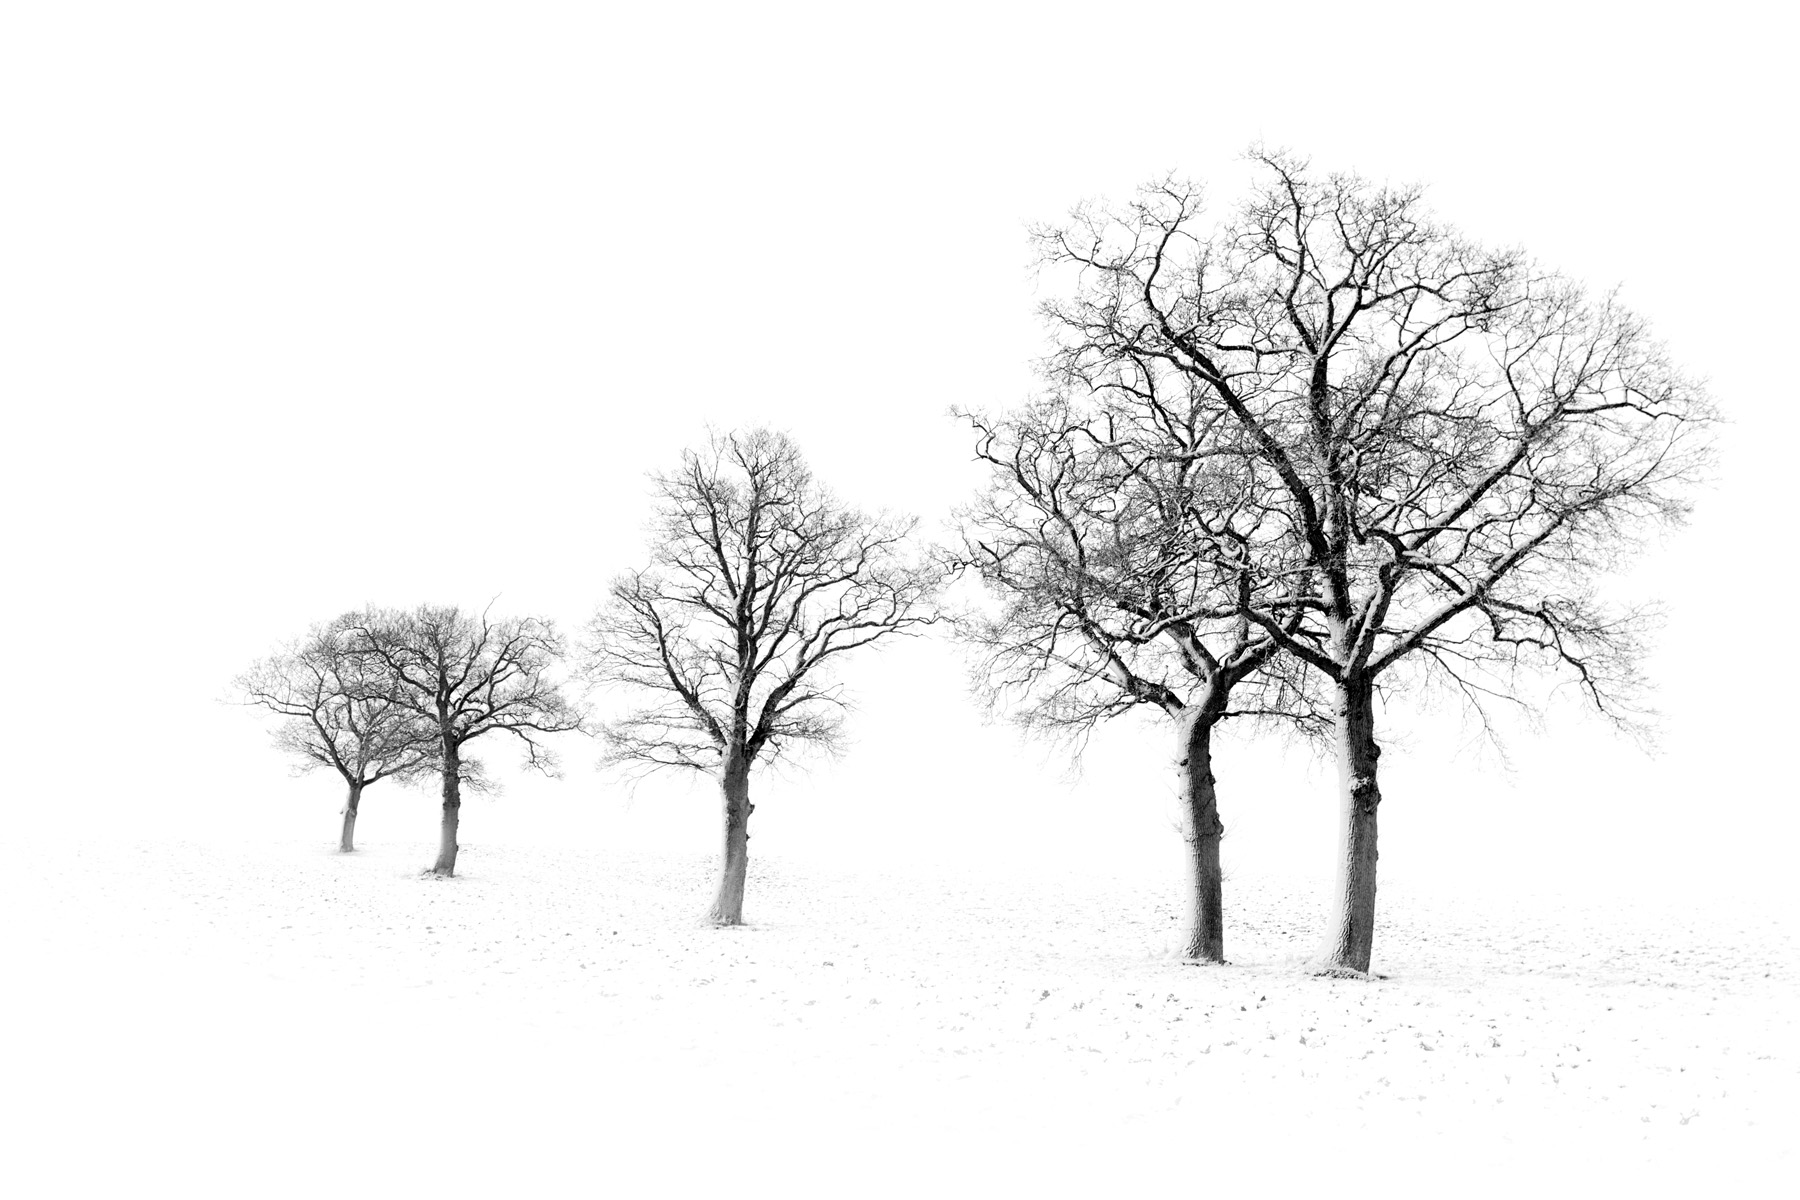 A row of trees stand out against the white Suffolk landscape. Canon 5D MkII, Canon 17-40mm f/4 at 40mm, ISO 100, 1/50s at f/8, Handheld. © Justin Minns